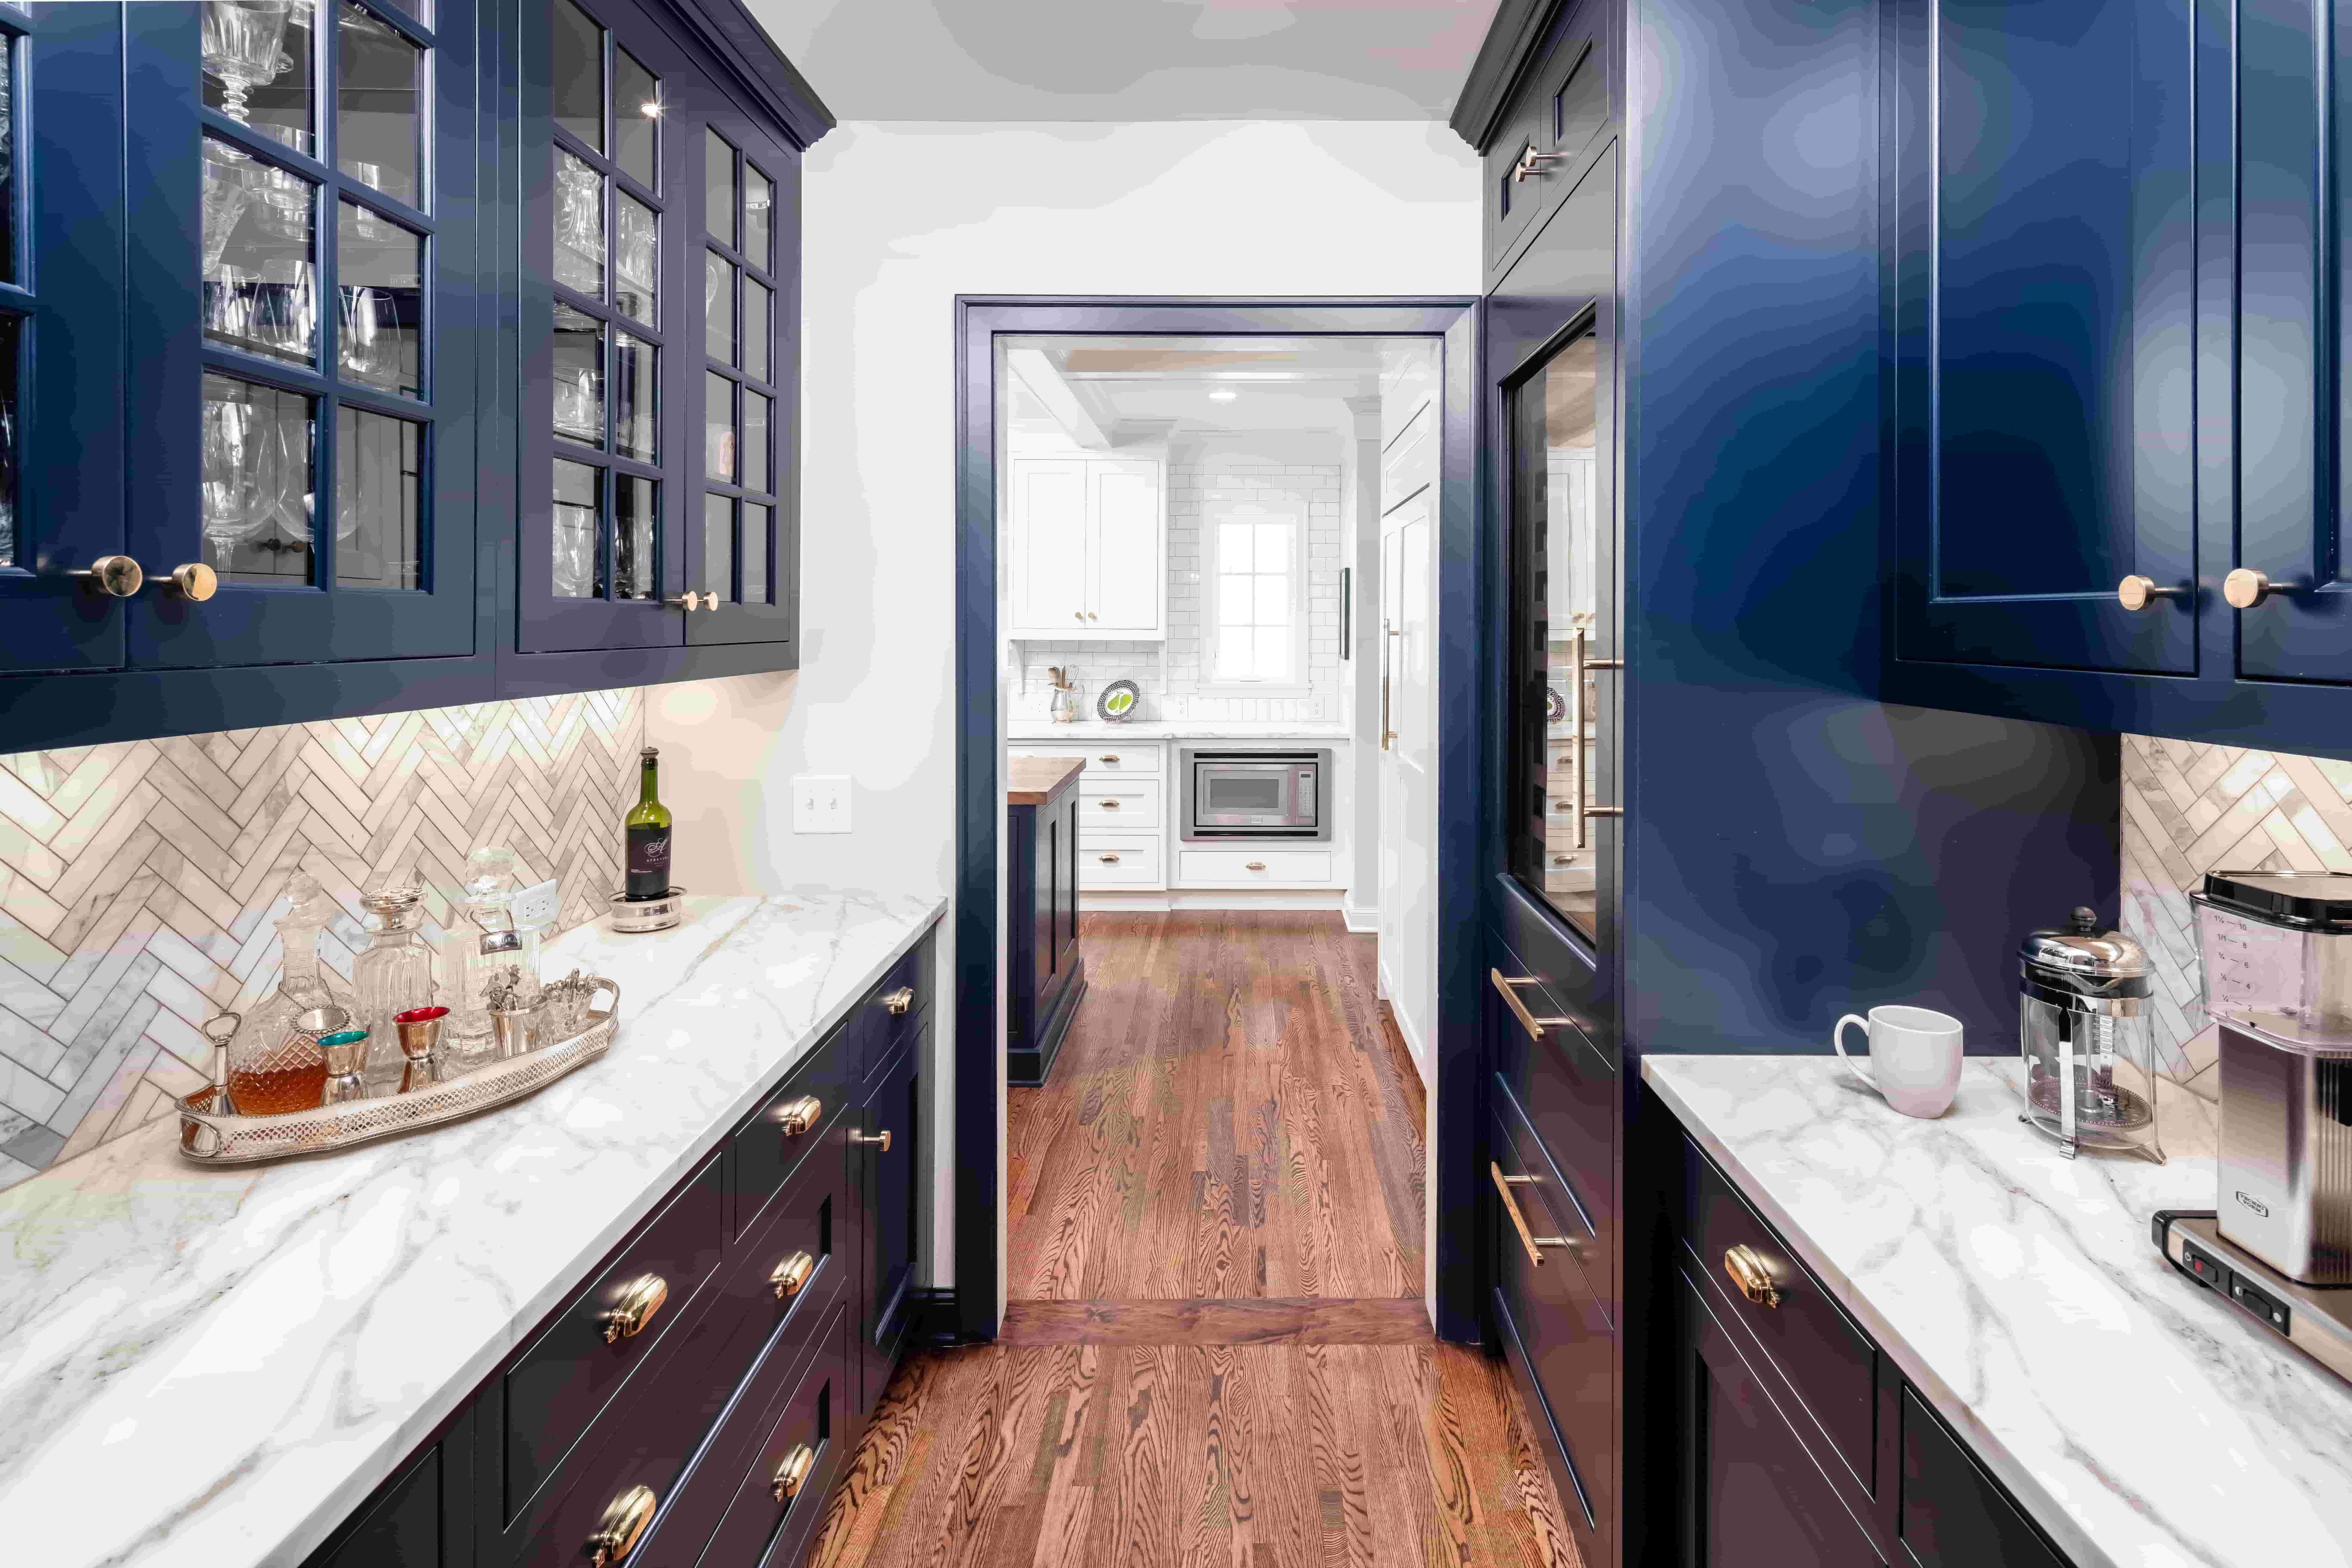 See Our Stunning Edina Remodel, Featured on Local Morning News